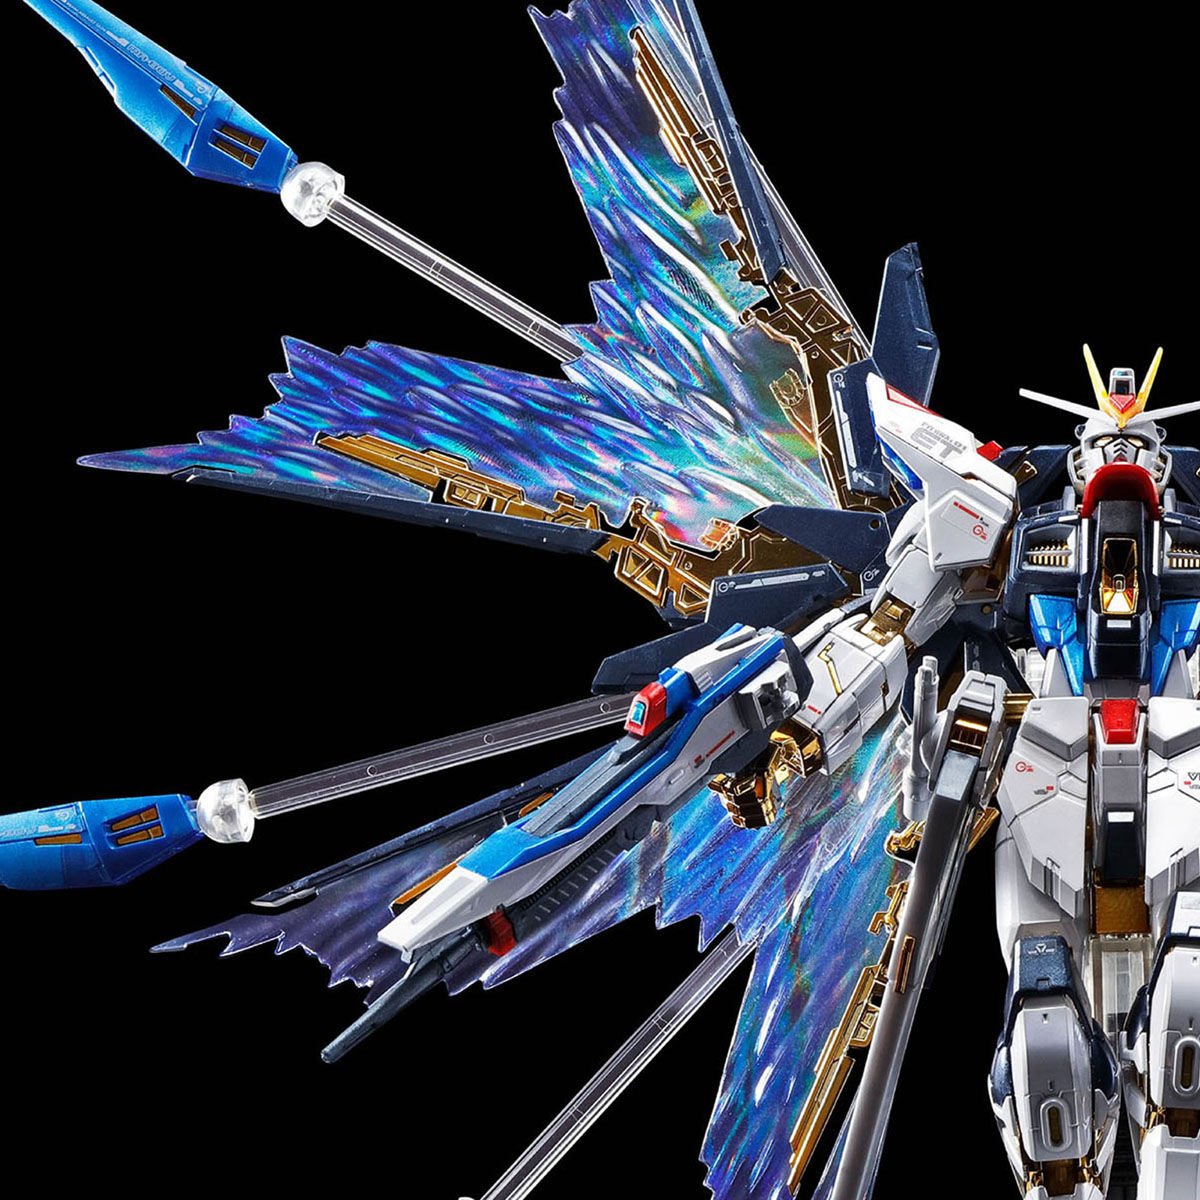 RG 1/144 EXPANSION EFFECT UNIT WING OF THE SKIES for STRIKE FREEDOM GUNDAM